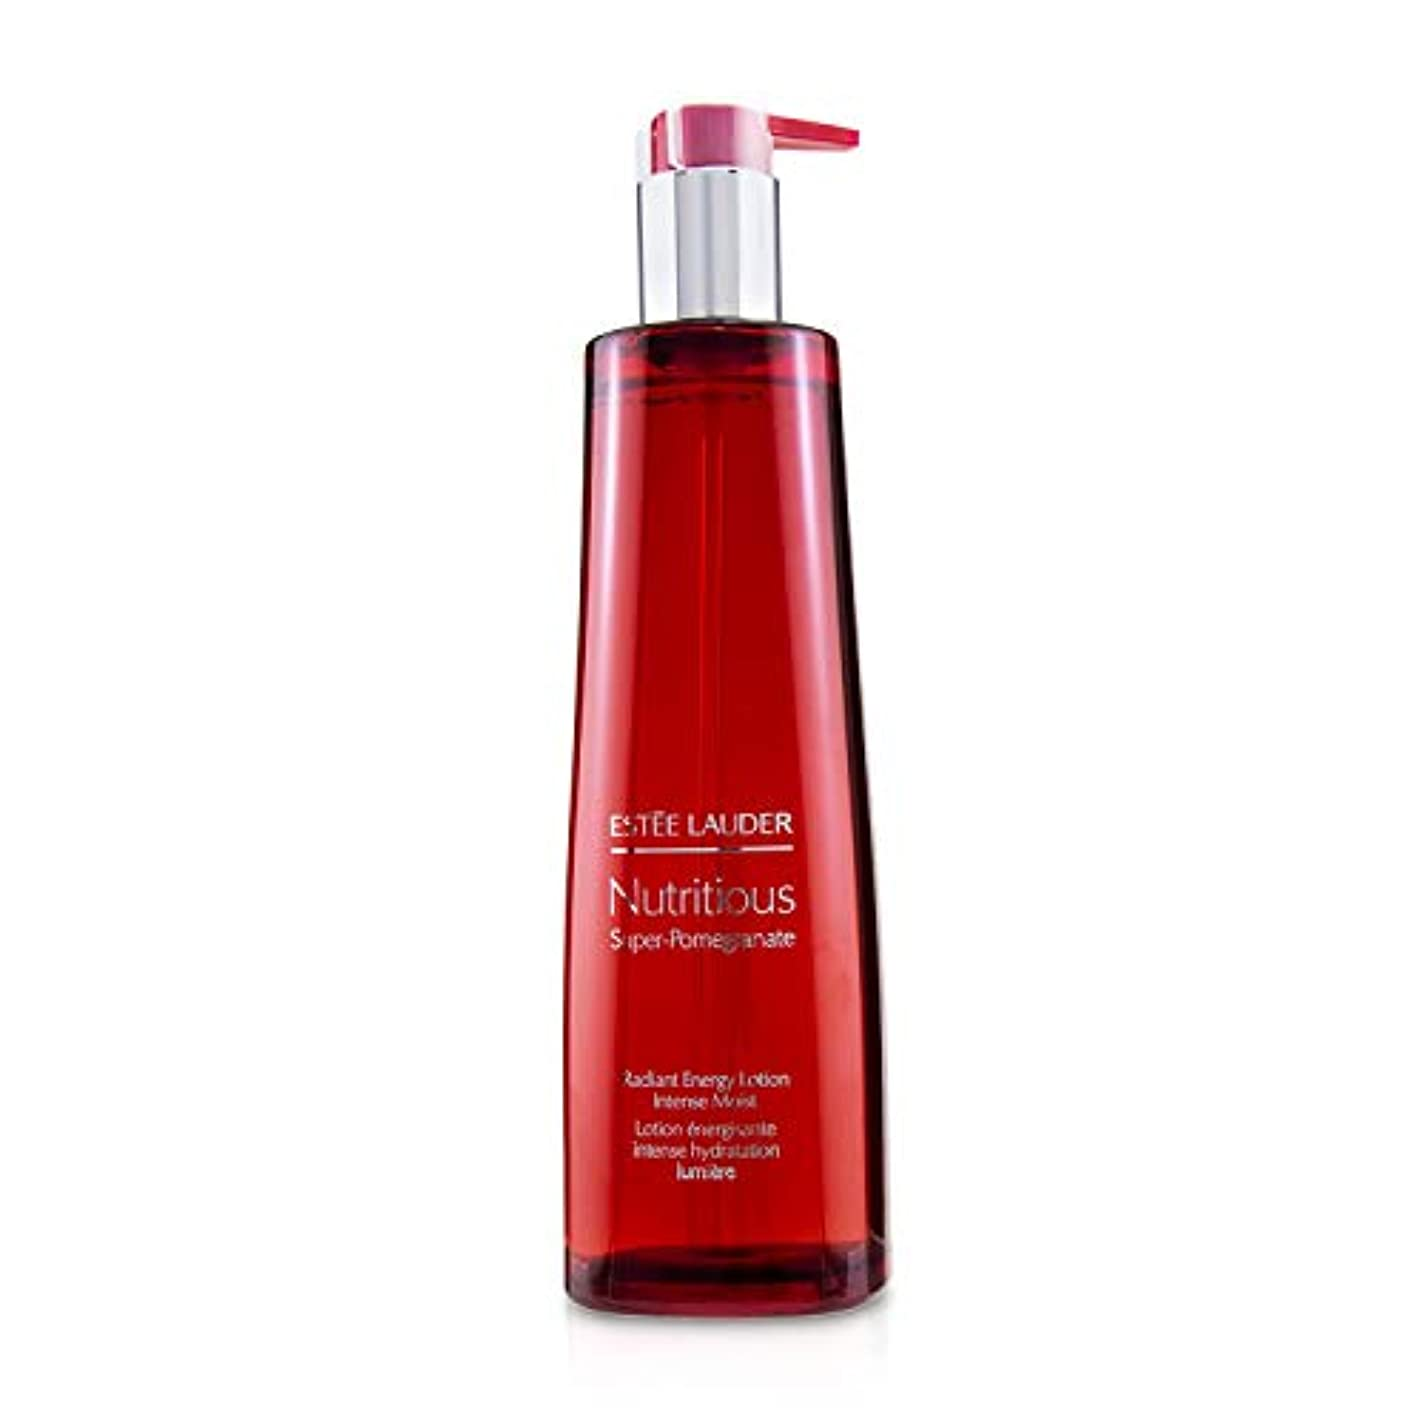 スーパーマーケットスカルクガイダンスエスティ ローダー Nutritious Super-Pomegranate Radiant Energy Lotion - Intense Moist (Limited Edition) 400ml/13.5oz並行輸入品